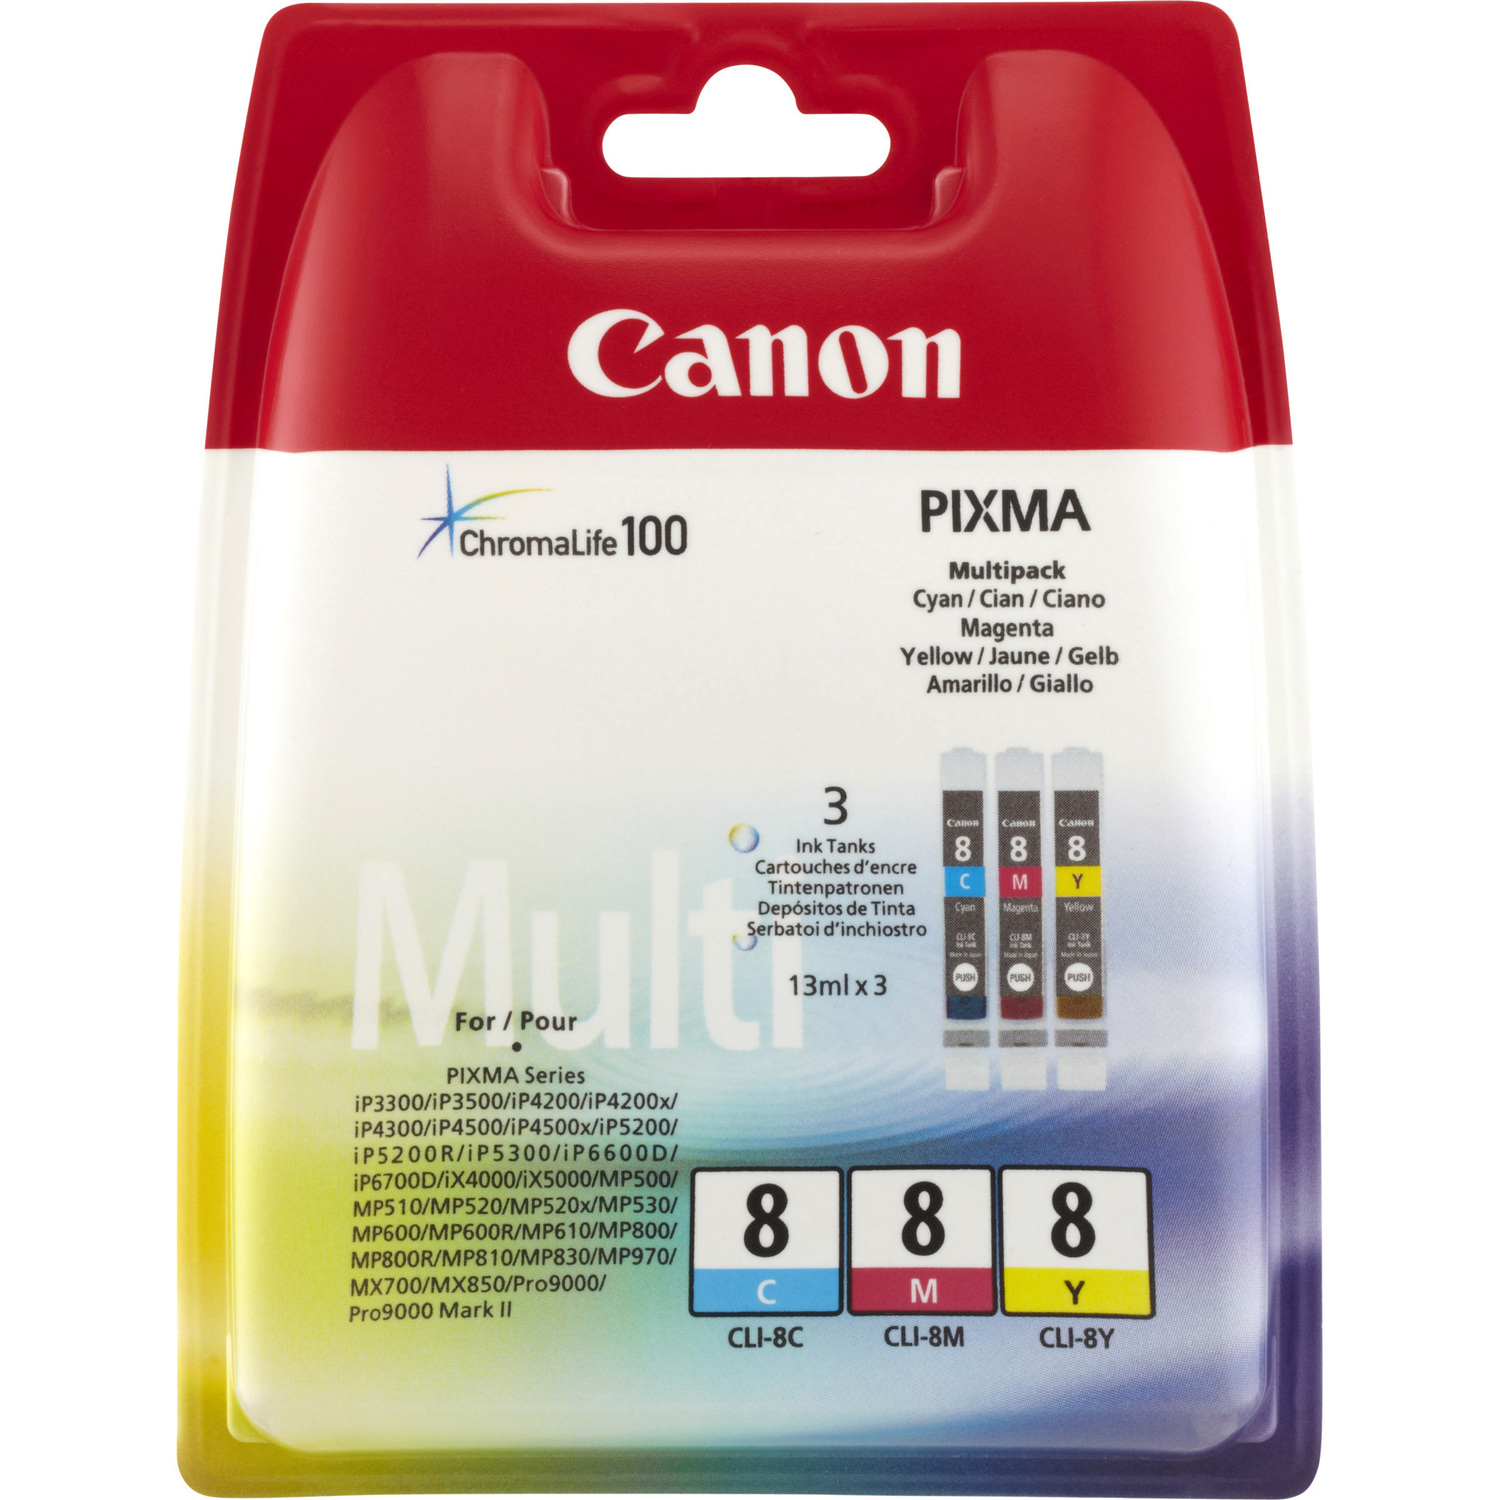 Canon CLI-8 Ink Cartridge - Cyan, Magenta, Yellow